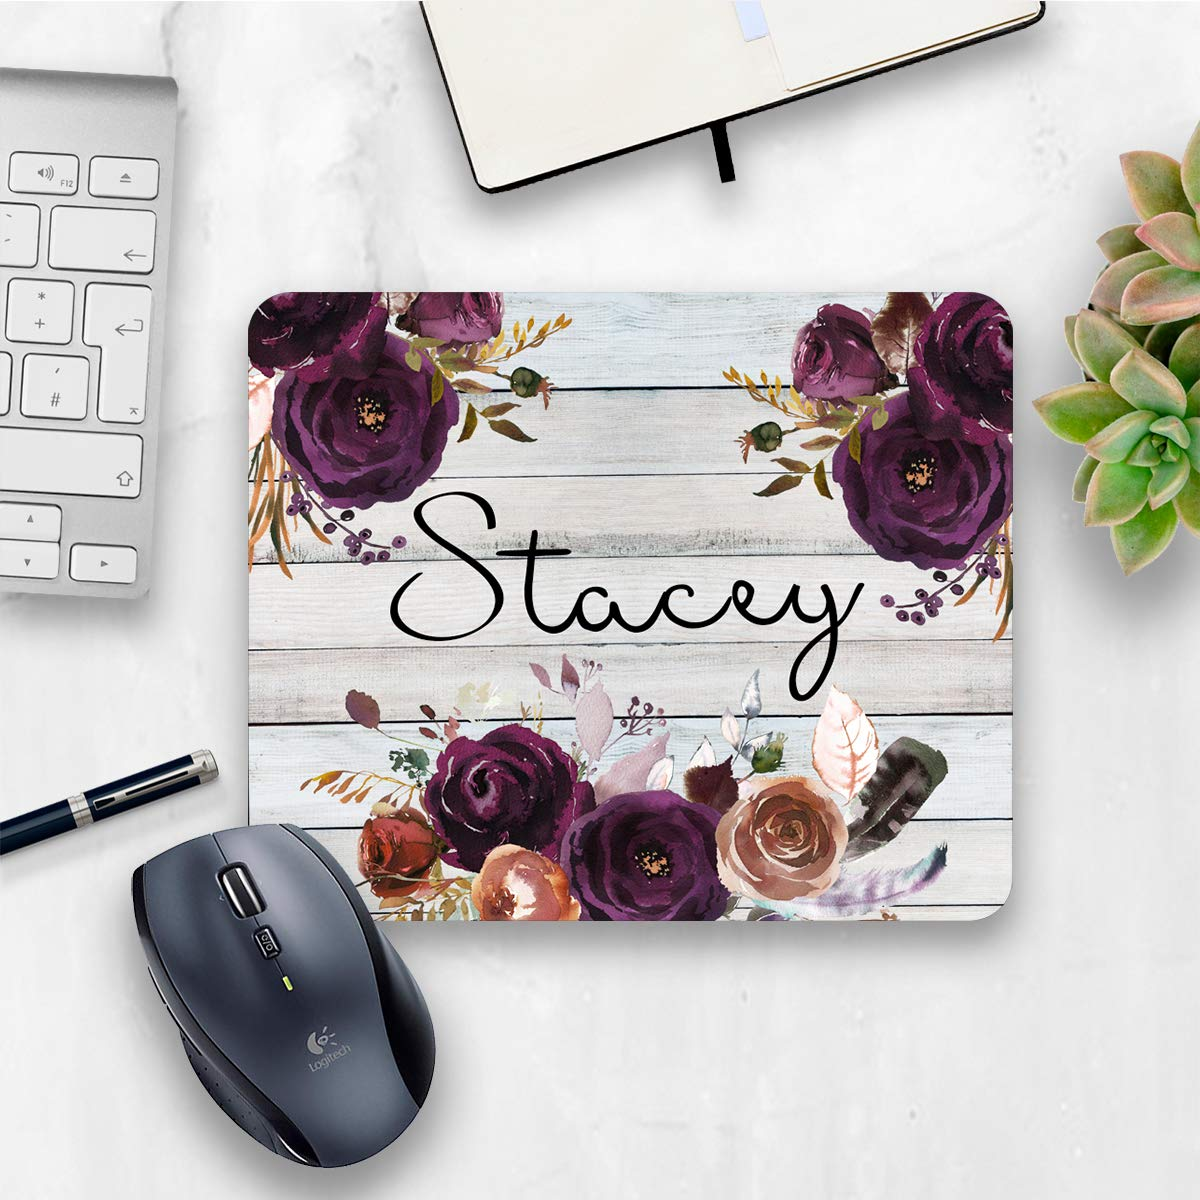 Personalized purple rustic floral mouse pad, floral rose home or office decor desk accessory gift for co-worker appreciation 71NvIhEBkDL